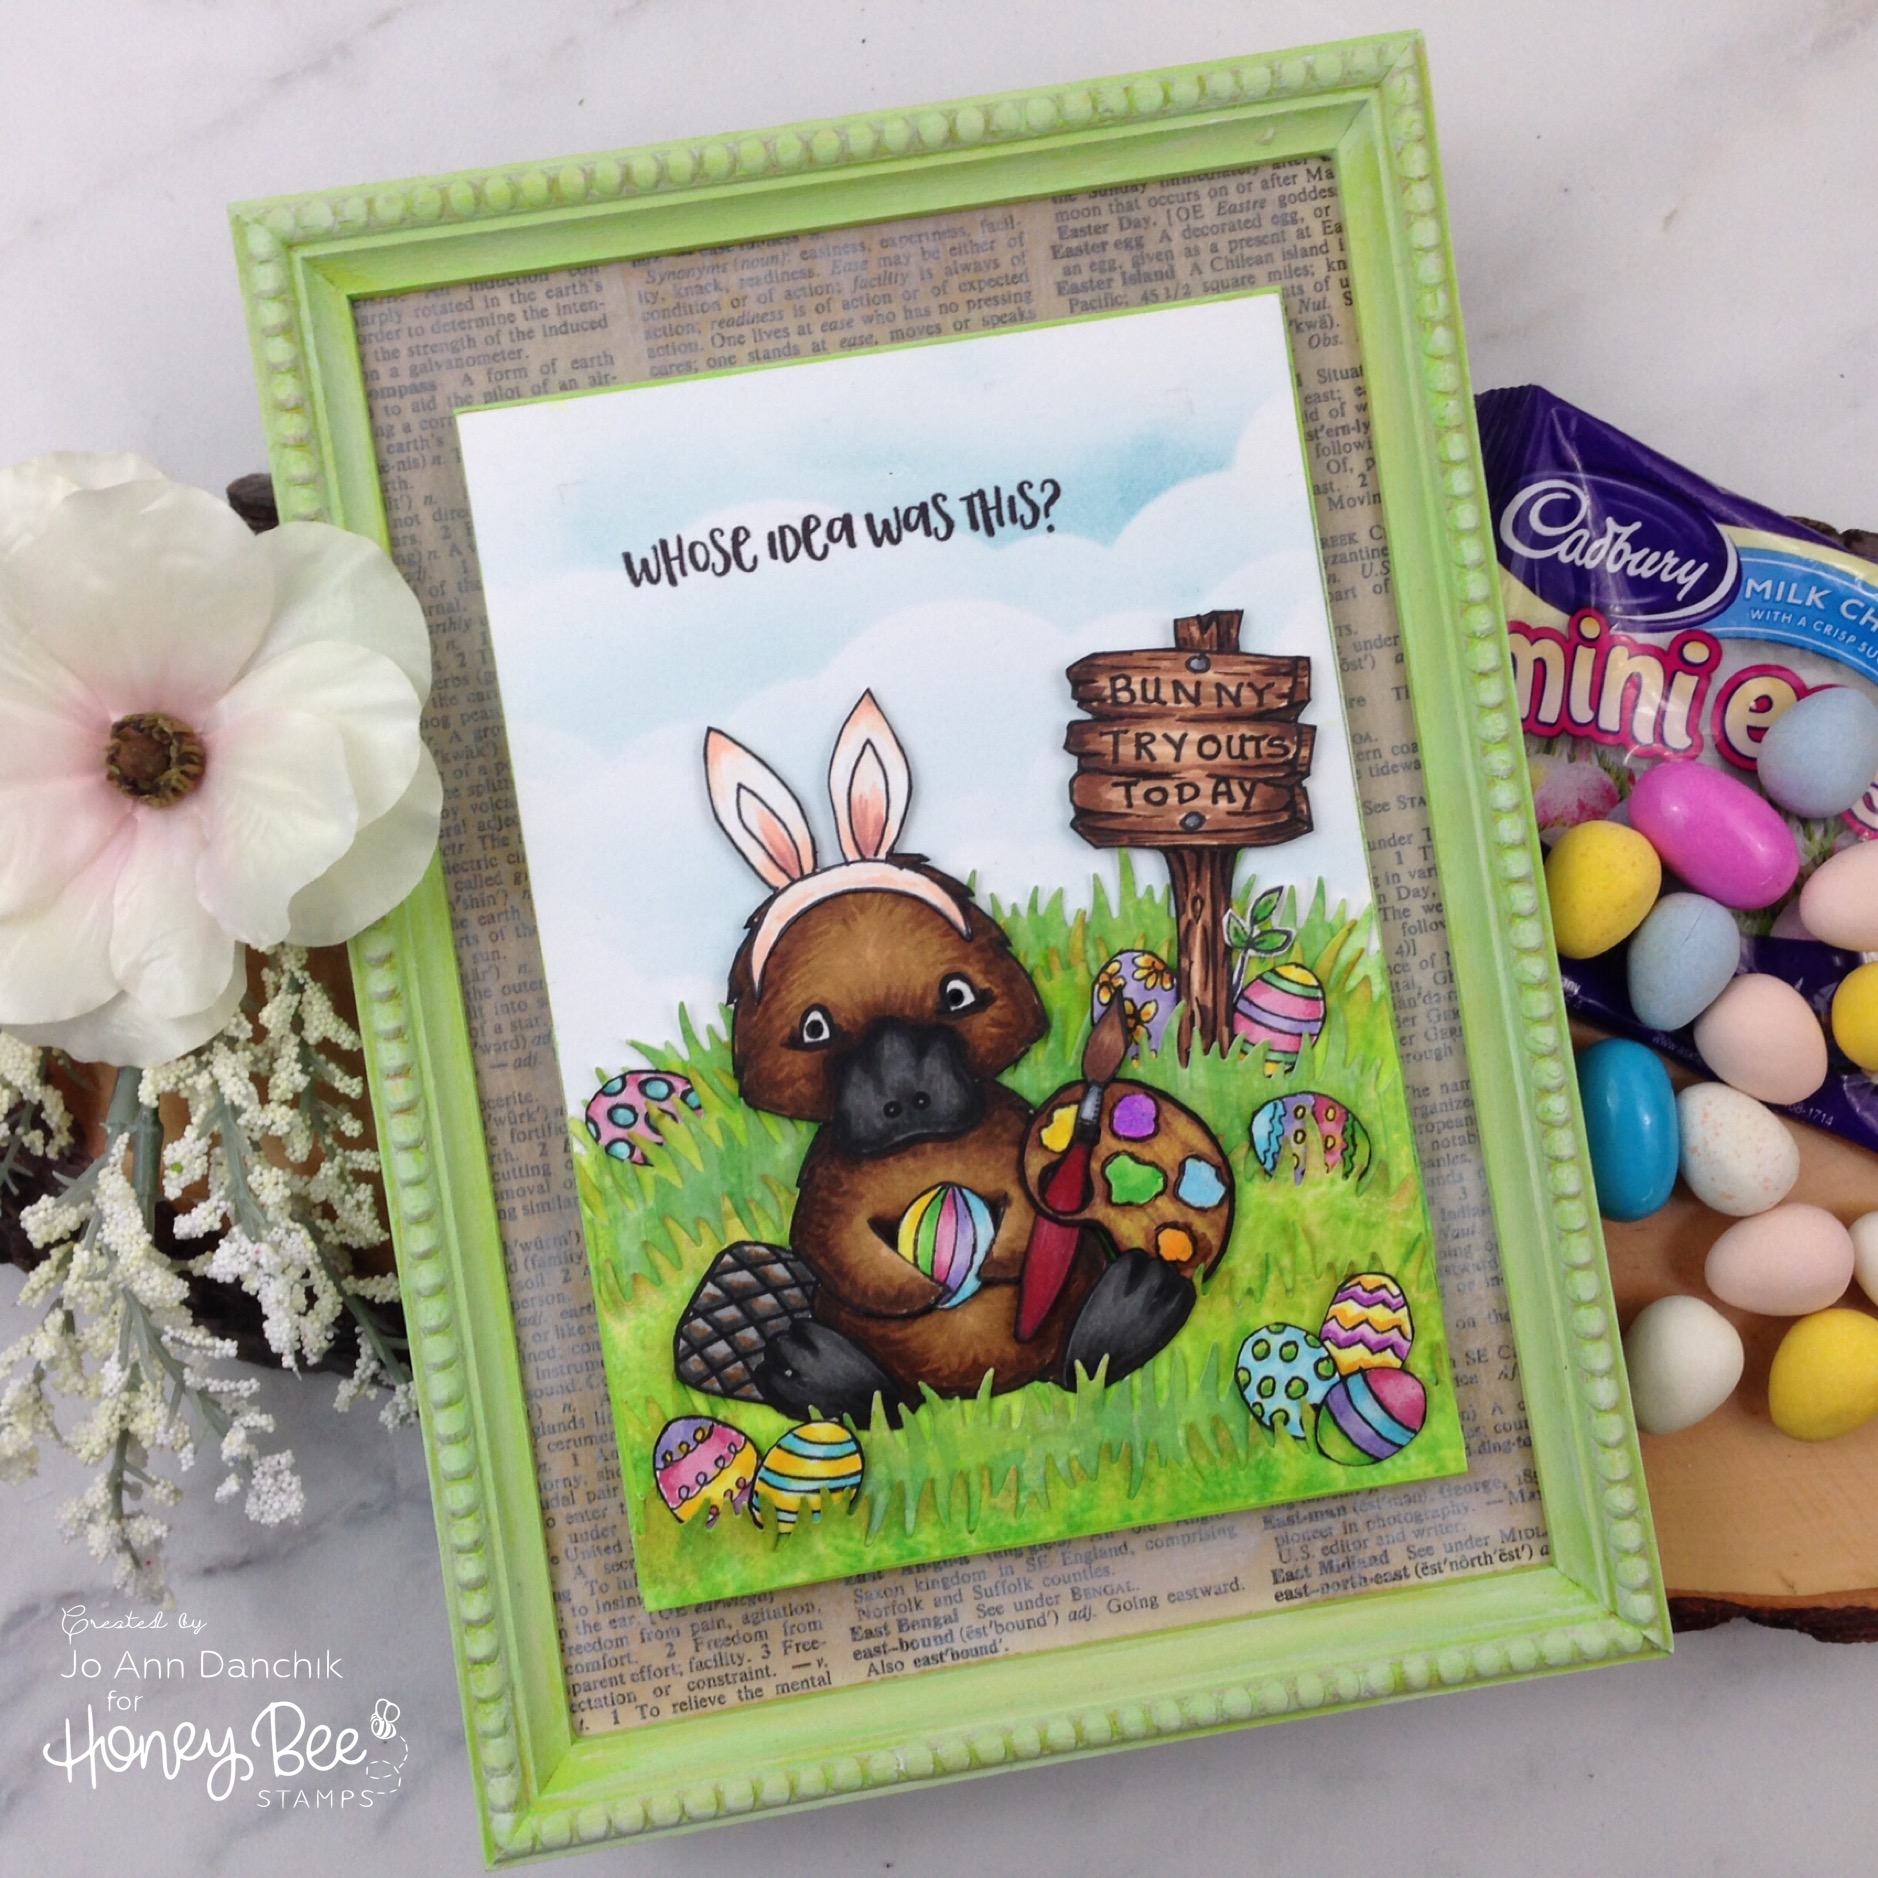 Creative Sundays With Jo Ann: Bunny Tryouts Today